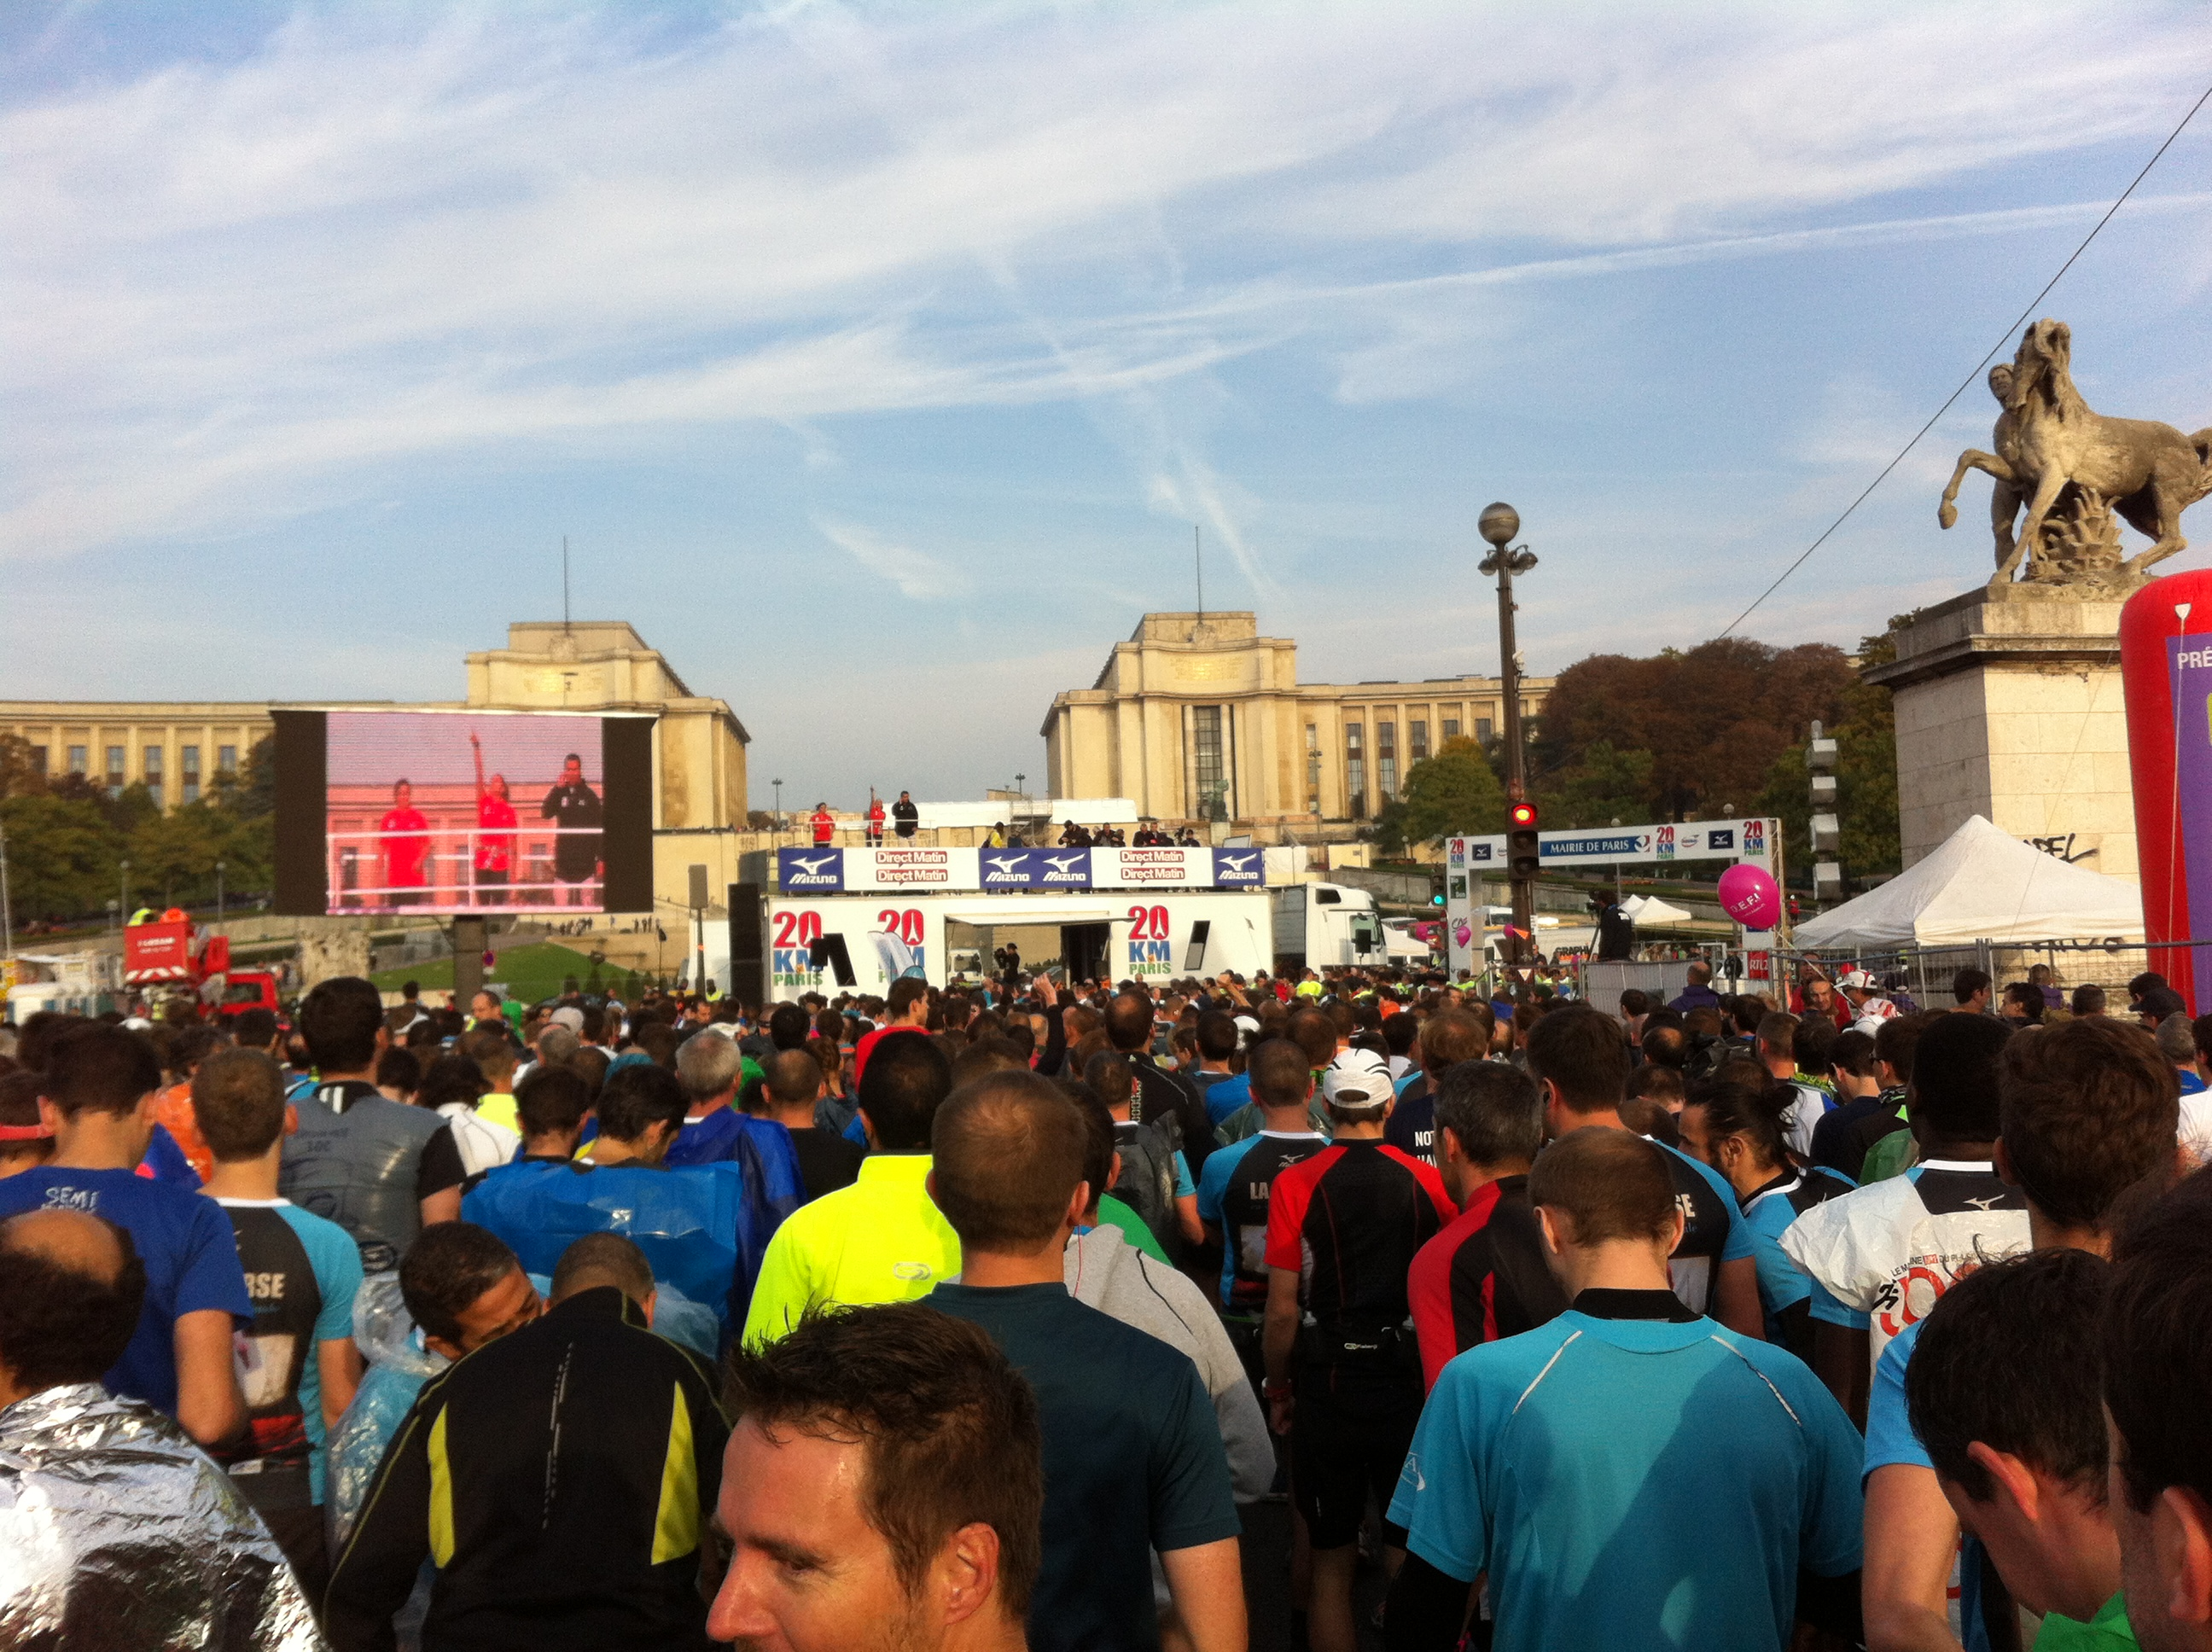 11-10-2015 : 20 km de Paris